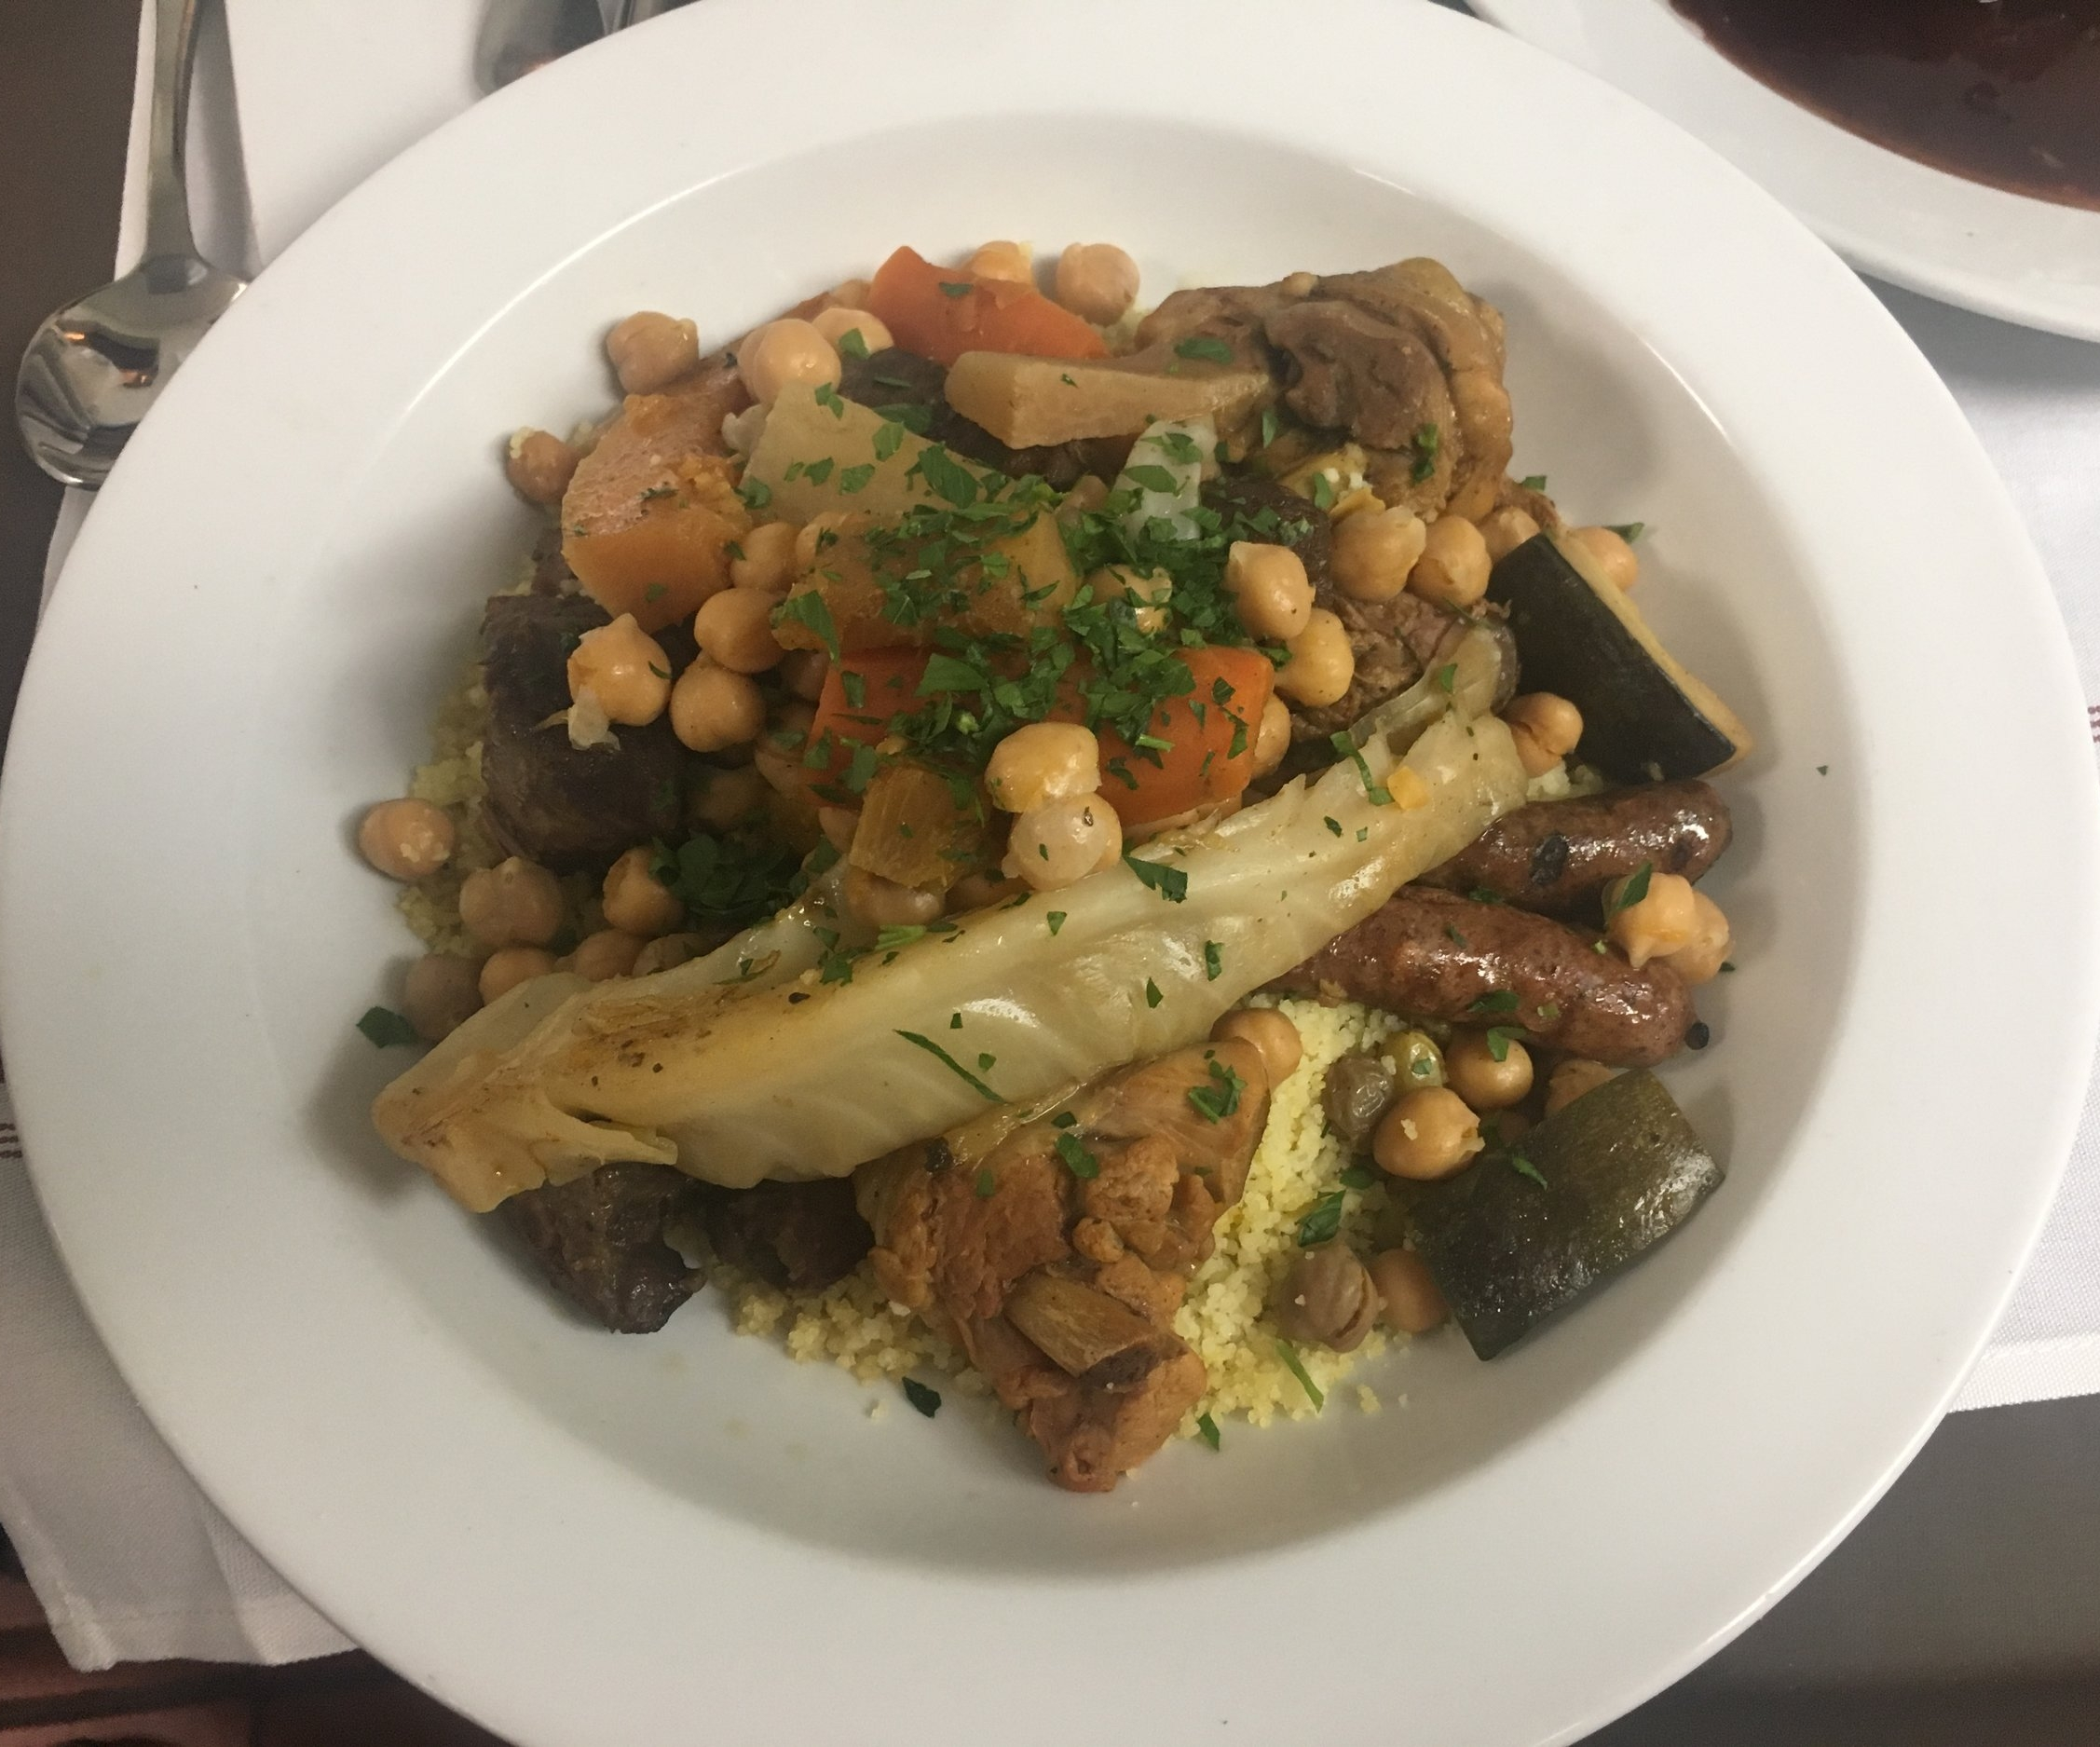 Vegetable Couscous, butternut squash, zucchini, carrot, turnips, cabbage, chick peas, tomato